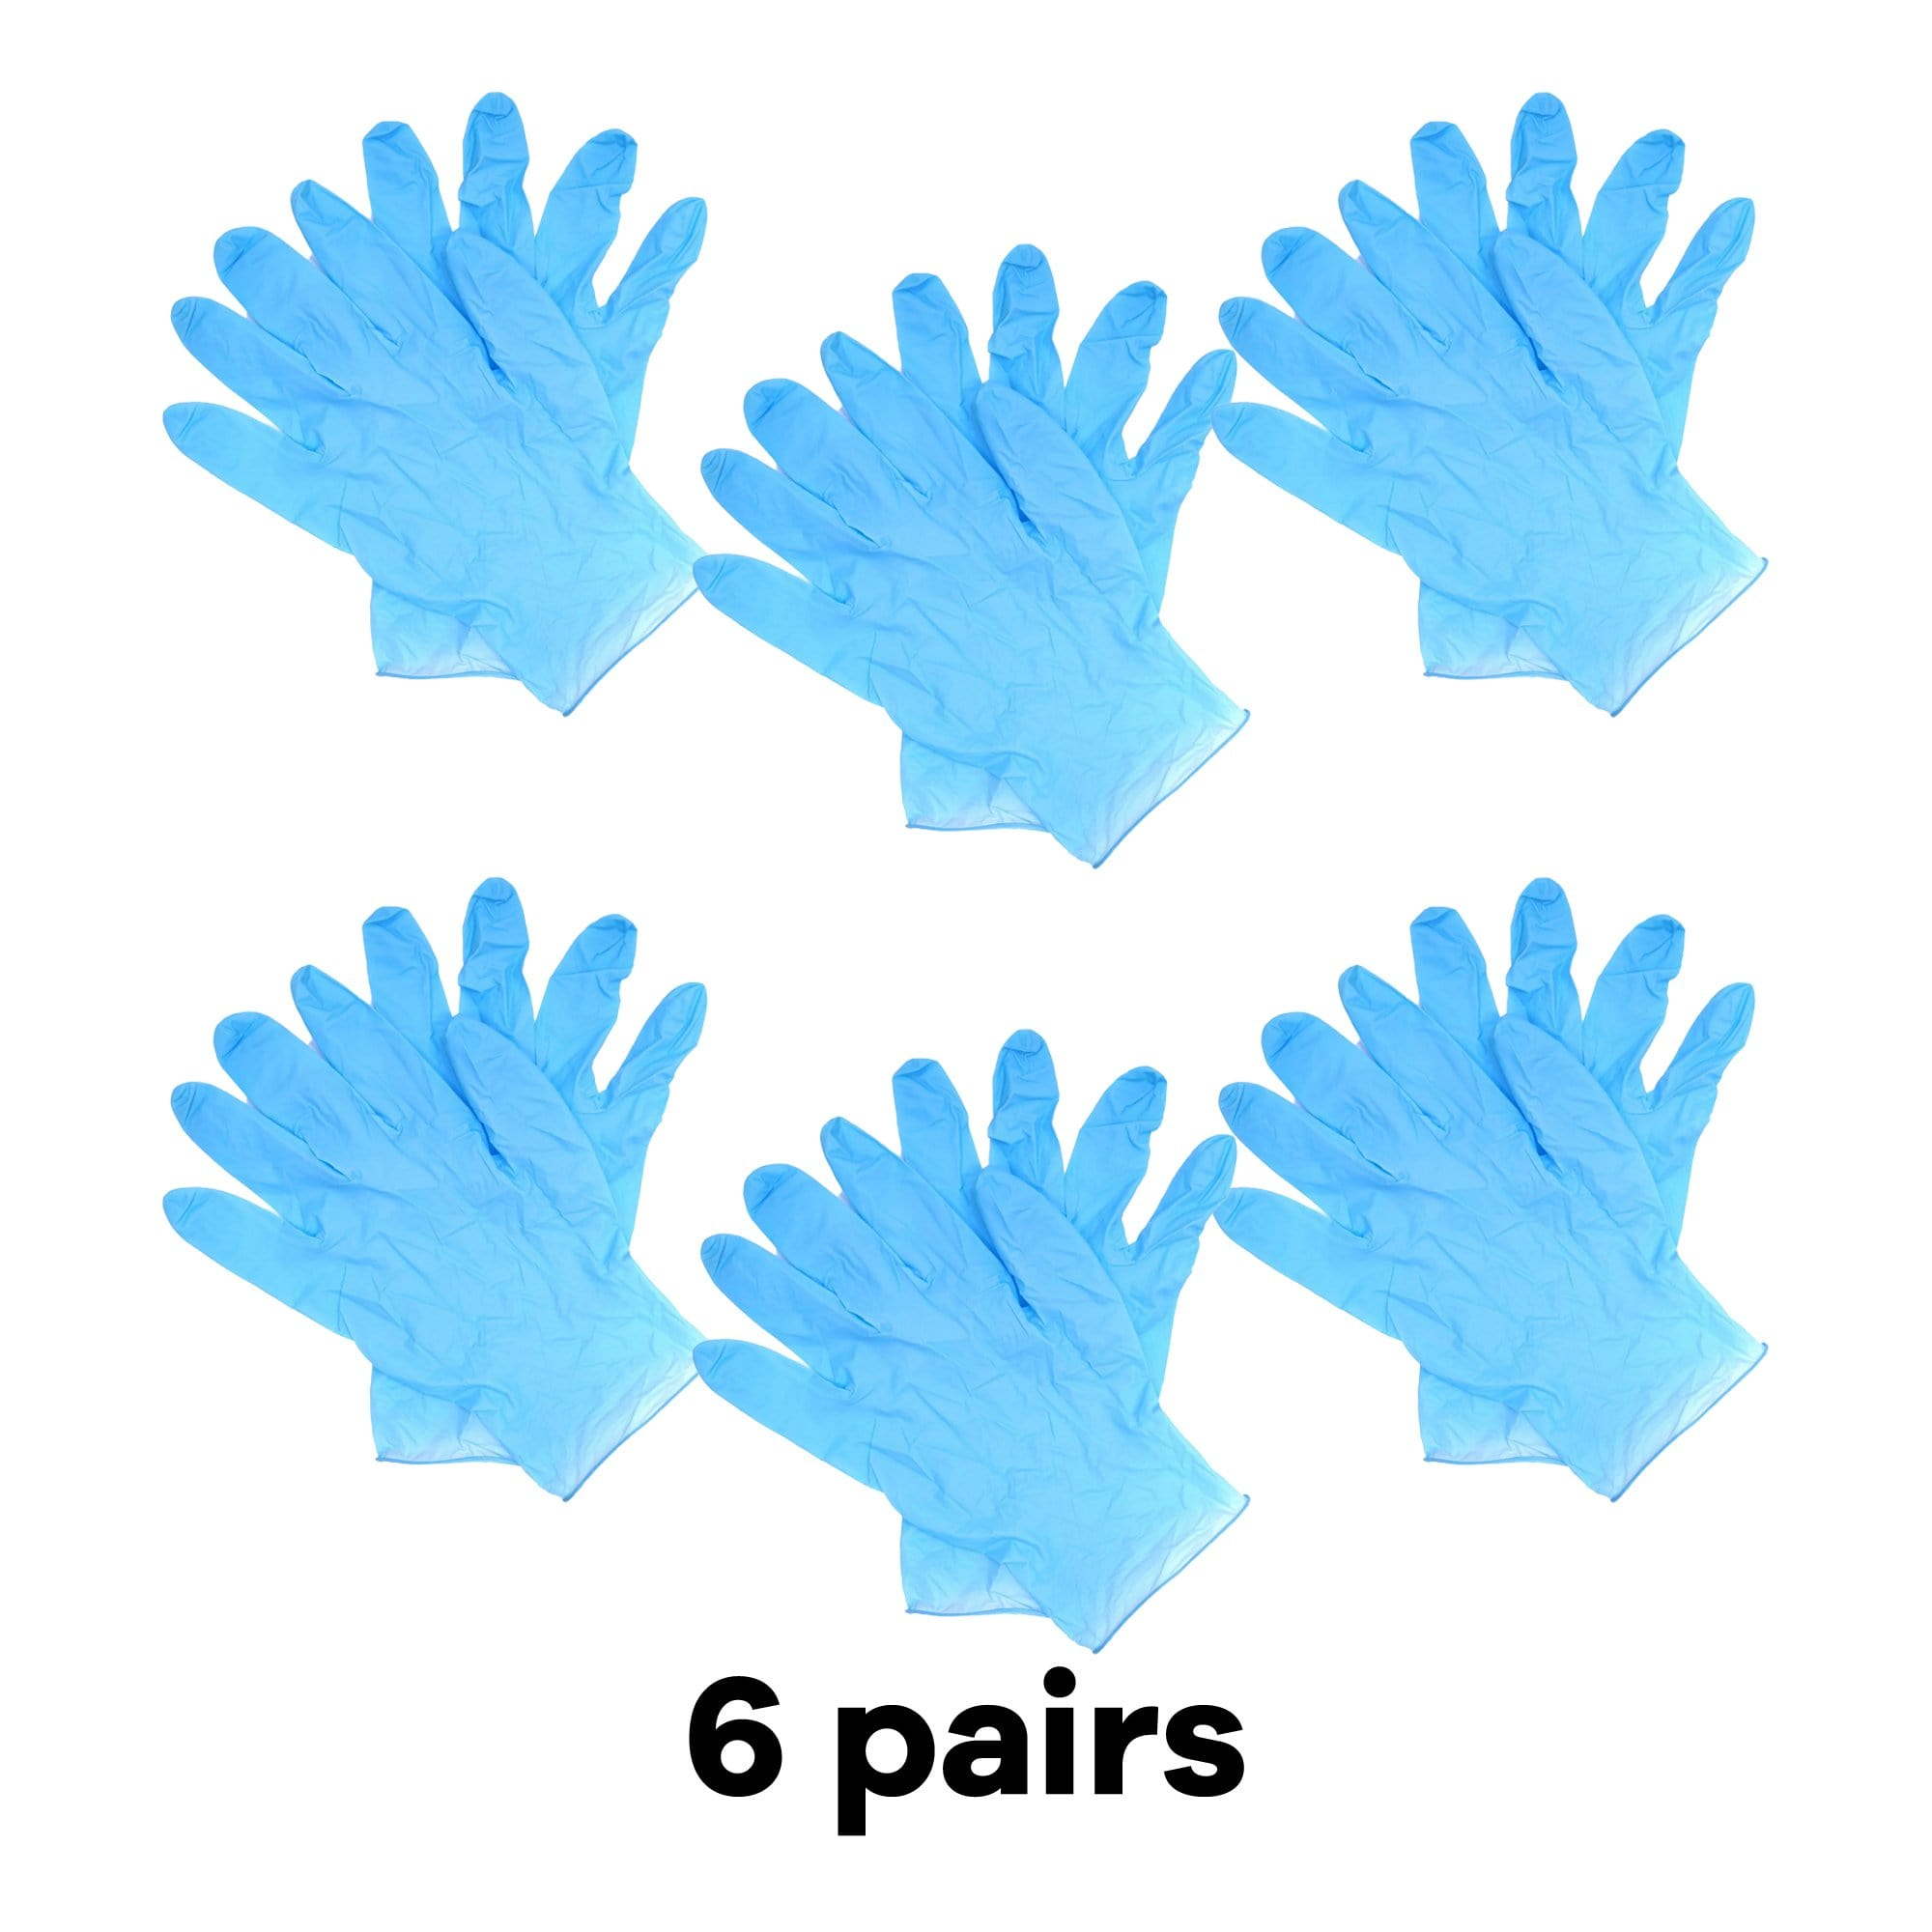 Nitrile Glove, 3.5g, Blue, Size L, 12Pcs Pack